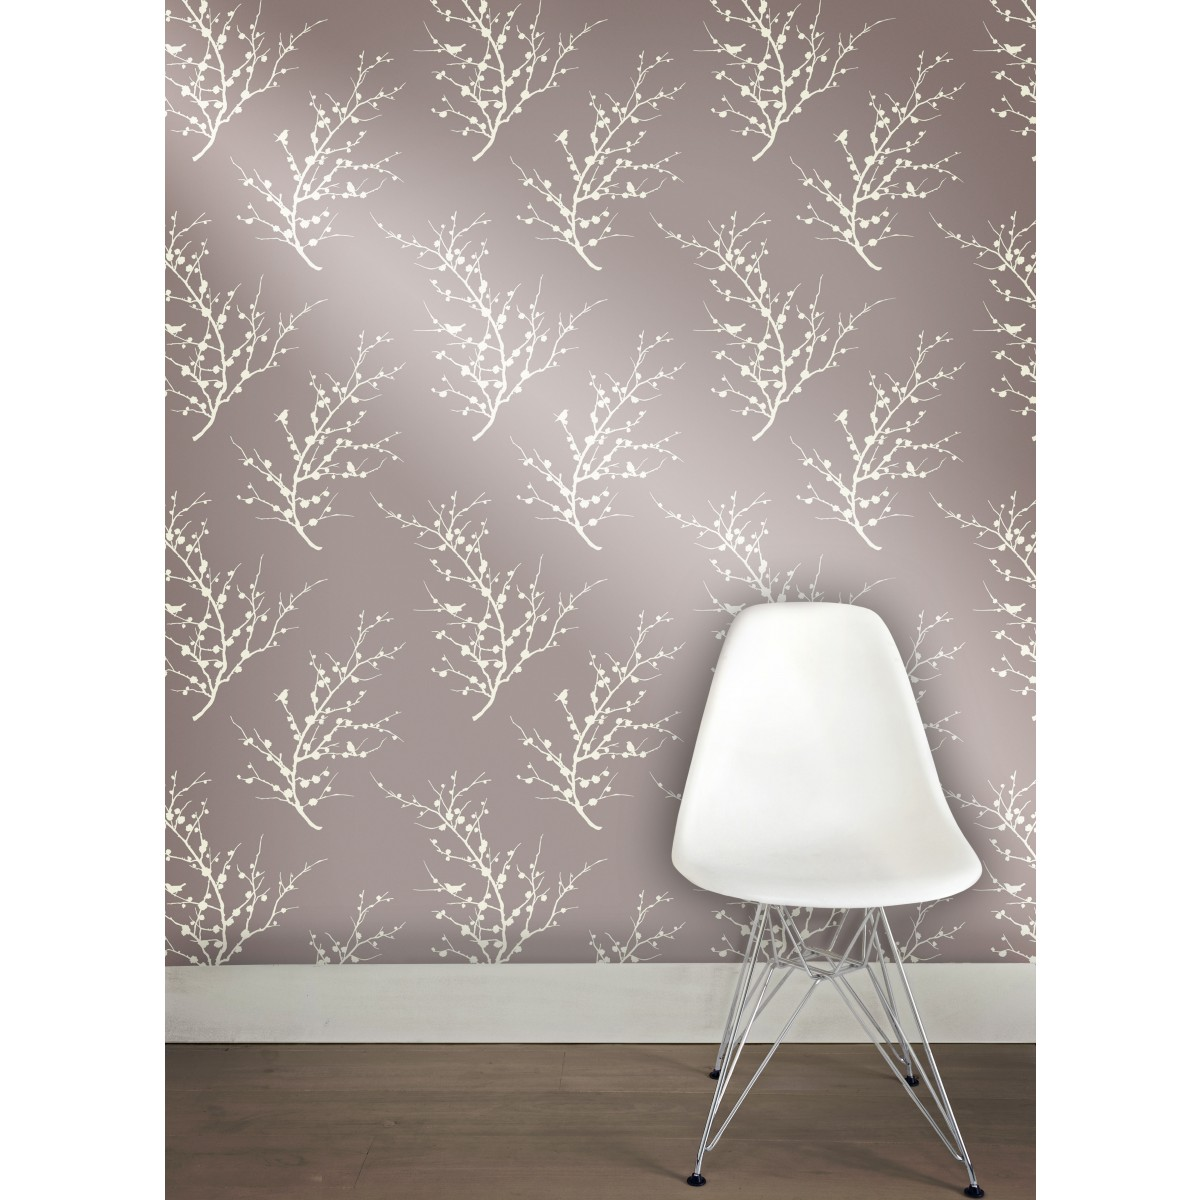 wonderful Tempaper Wallpaper edie champagne in gray matched with wooden floor for living room decor ideas